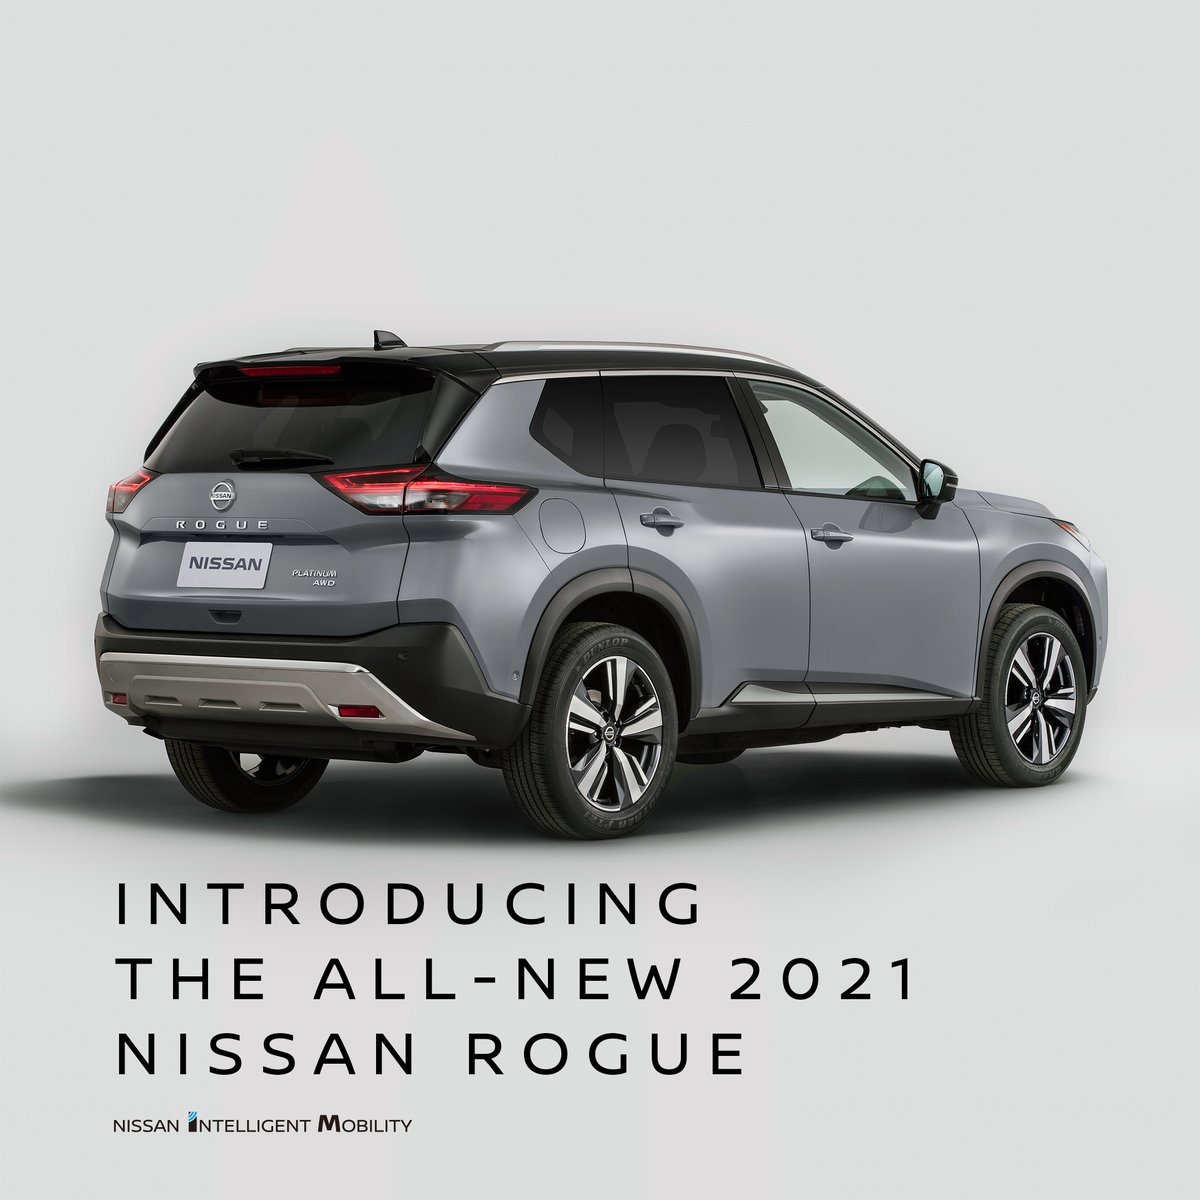 The All New Nissan Rogue has many features that will impress you!! Stop in @universalnissan and check out a few of these features which include the wireless apple carplay, 9-inch center screen and the tri-zone climate control and more!! @RogueGoneRogue #NissanRogue2021